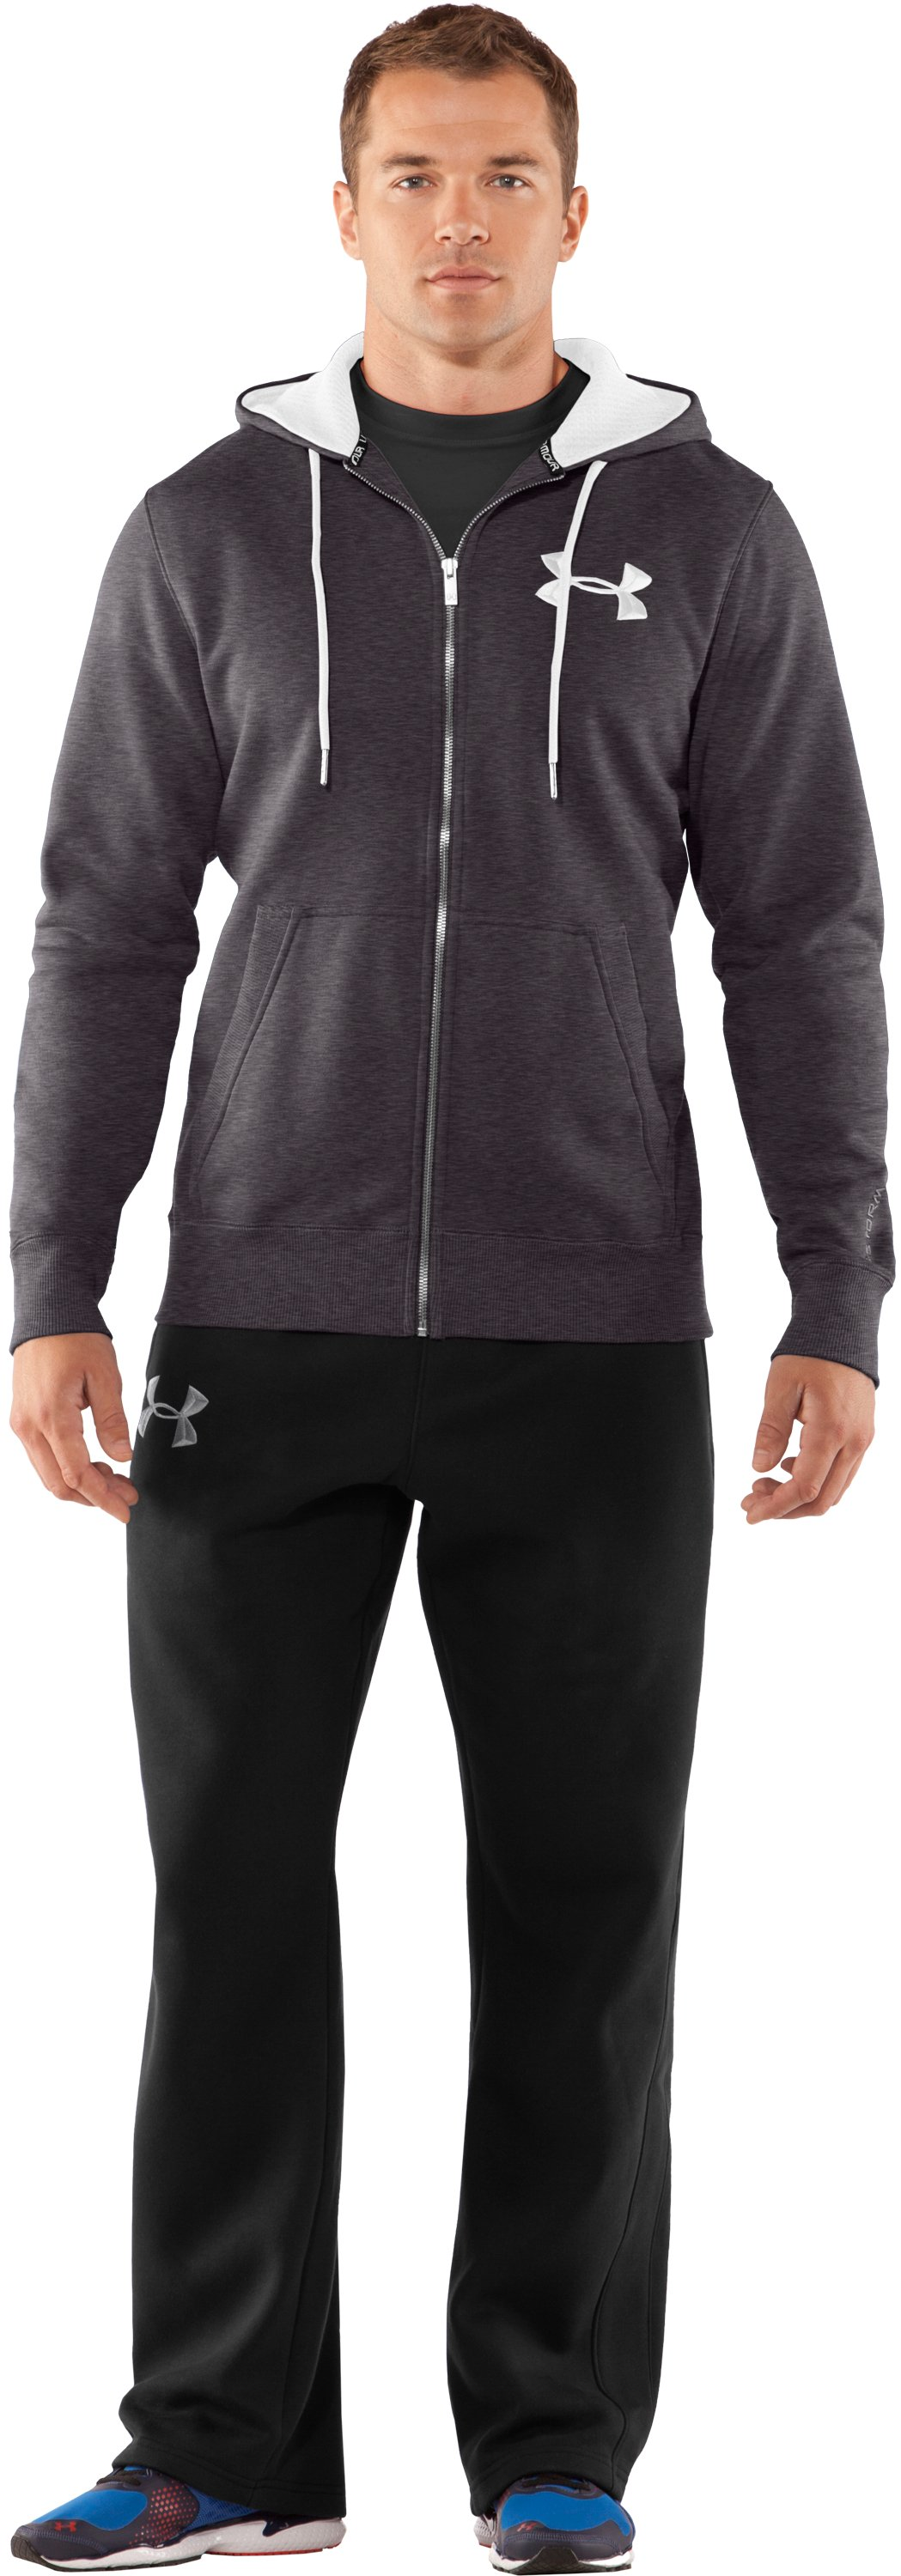 Men's Charged Cotton® Storm Full Zip Hoodie, Carbon Heather, zoomed image